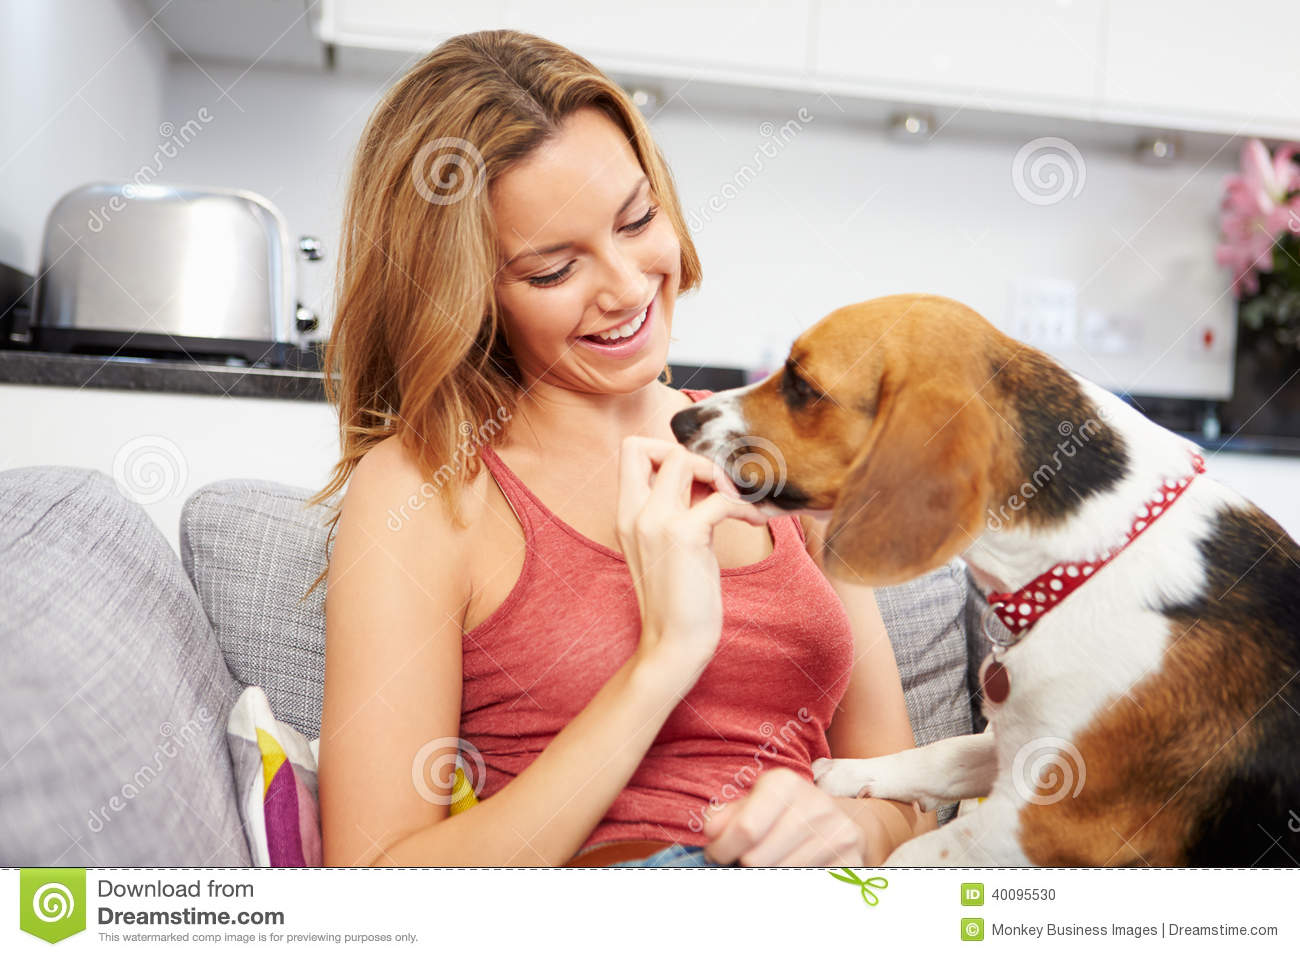 the woman with the pet dog